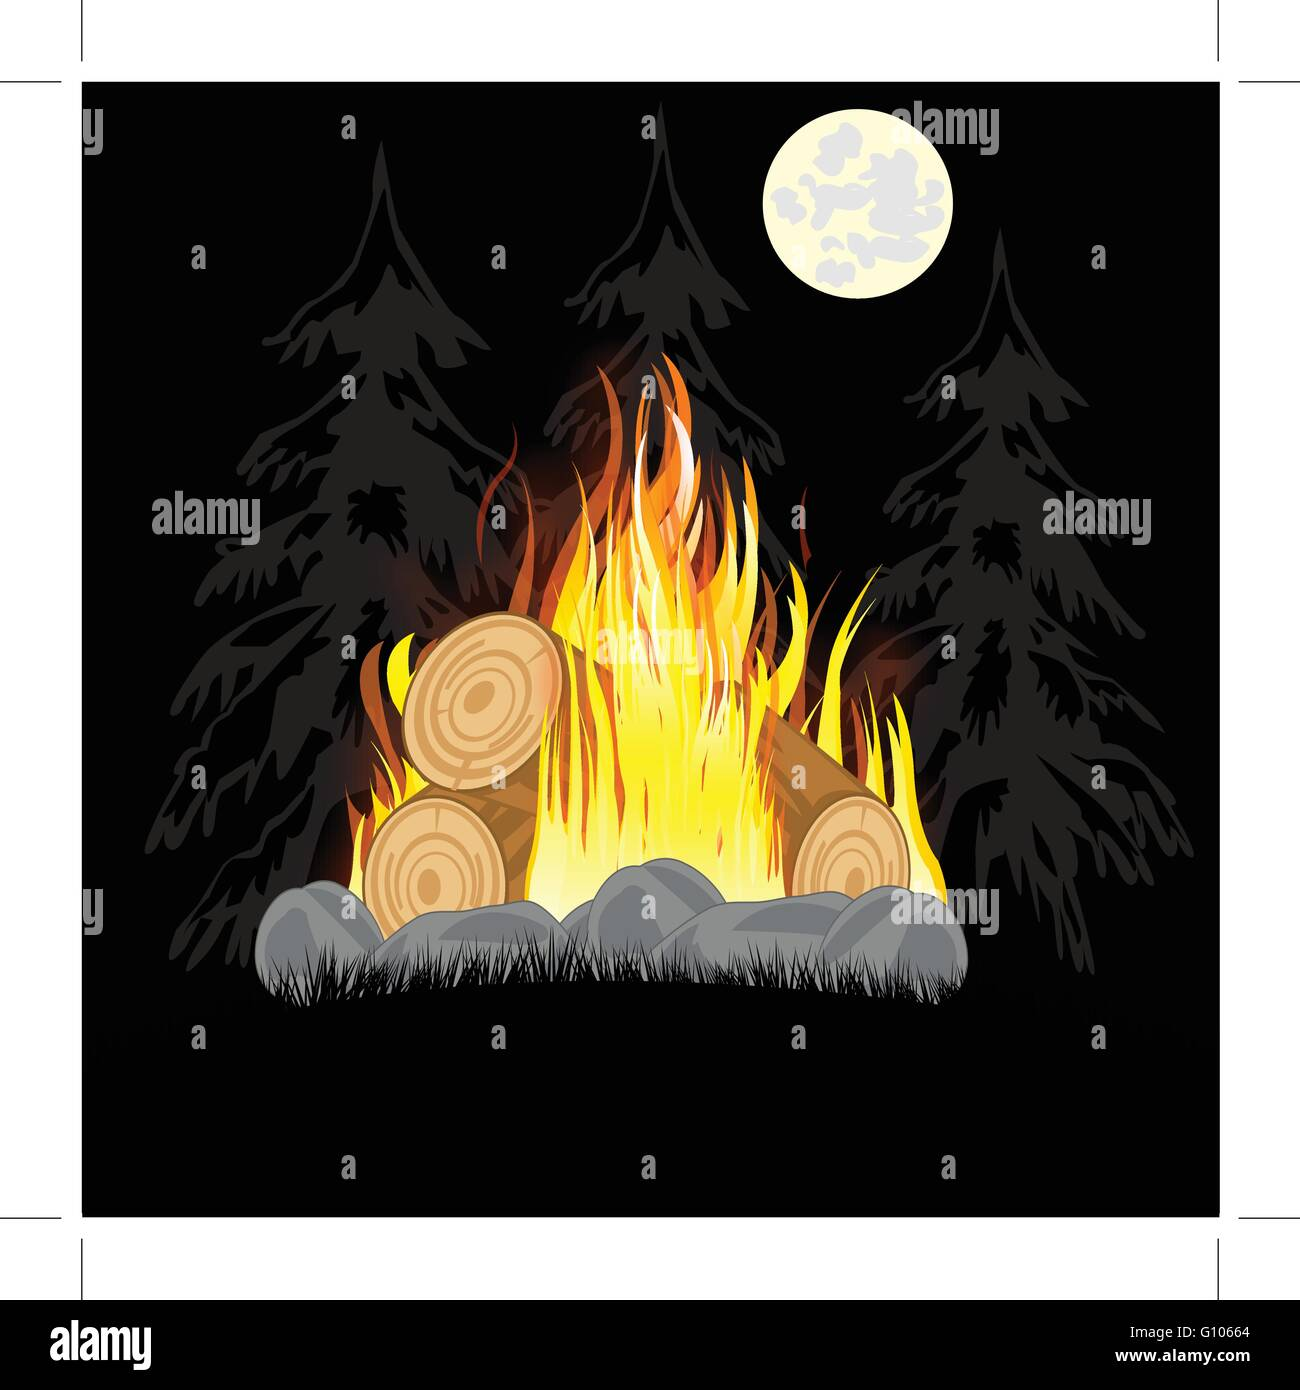 Illustration campfires in the night in wood on glade - Stock Image